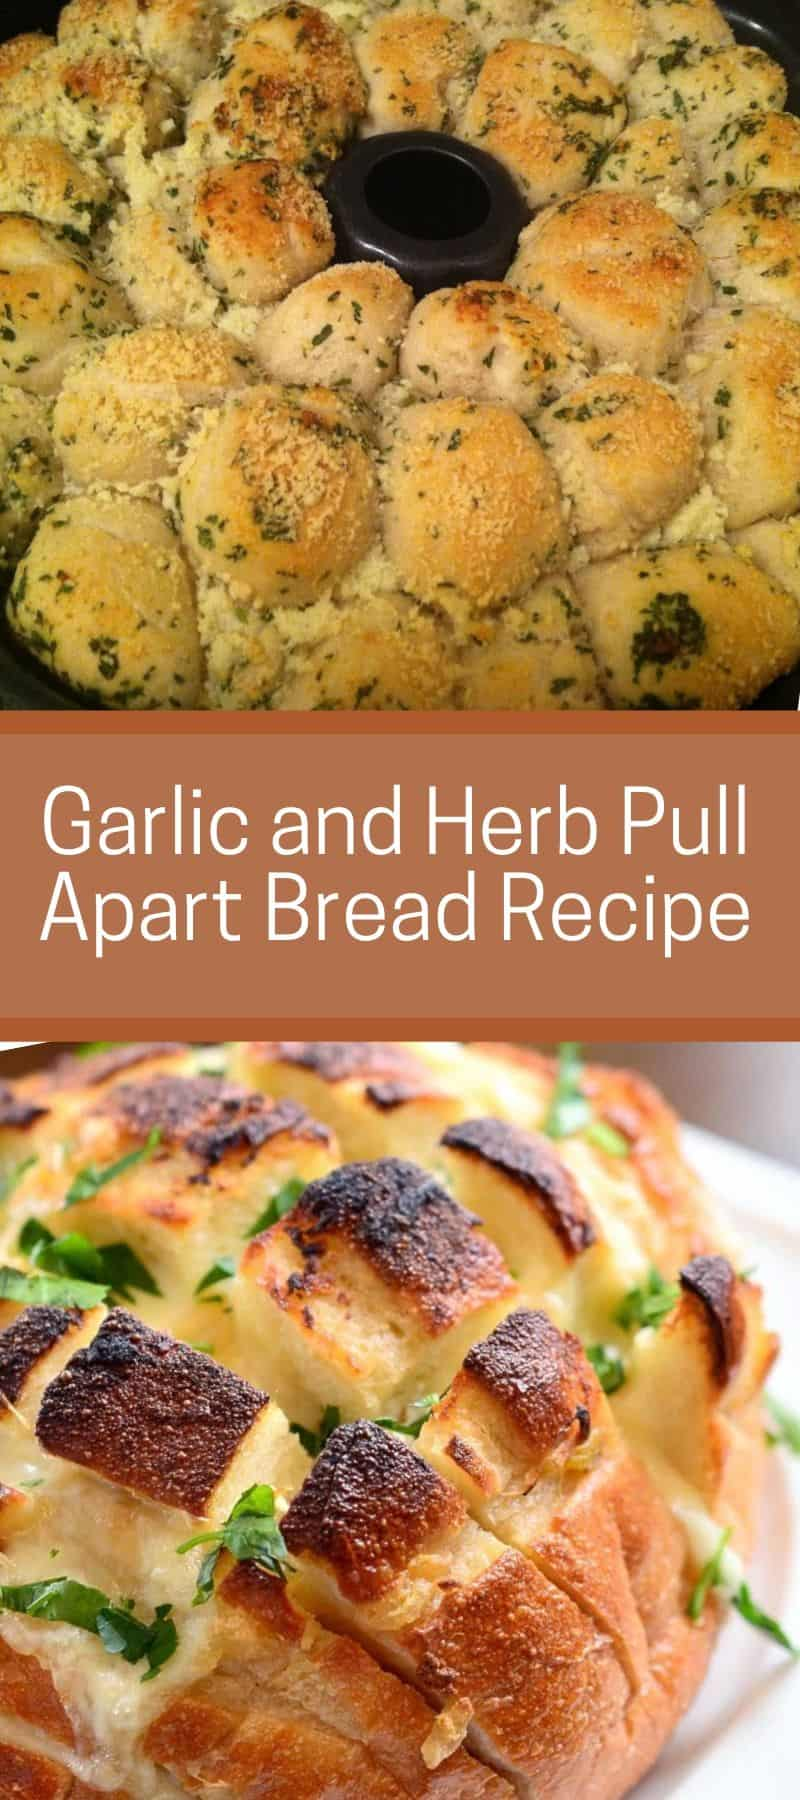 Garlic and Herb Pull Apart Bread Recipe 3